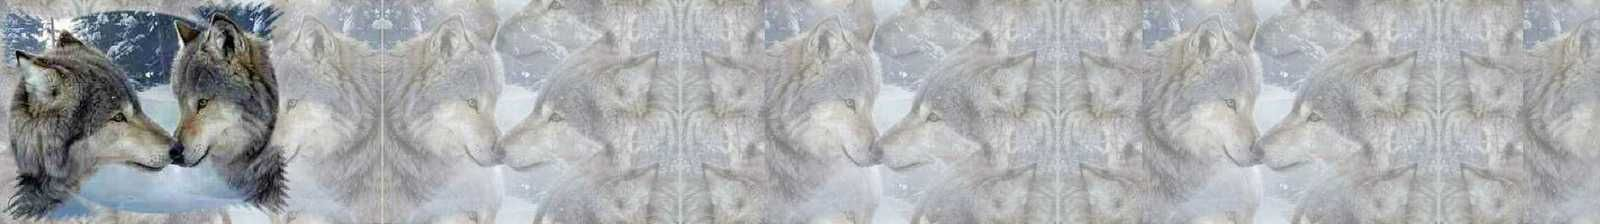 Loups Incredimail &amp&#x3B; Papier A4 h l &amp&#x3B; outlook &amp&#x3B; enveloppe &amp&#x3B; 2 cartes A5 &amp&#x3B; signets 3 langues     1117wolves